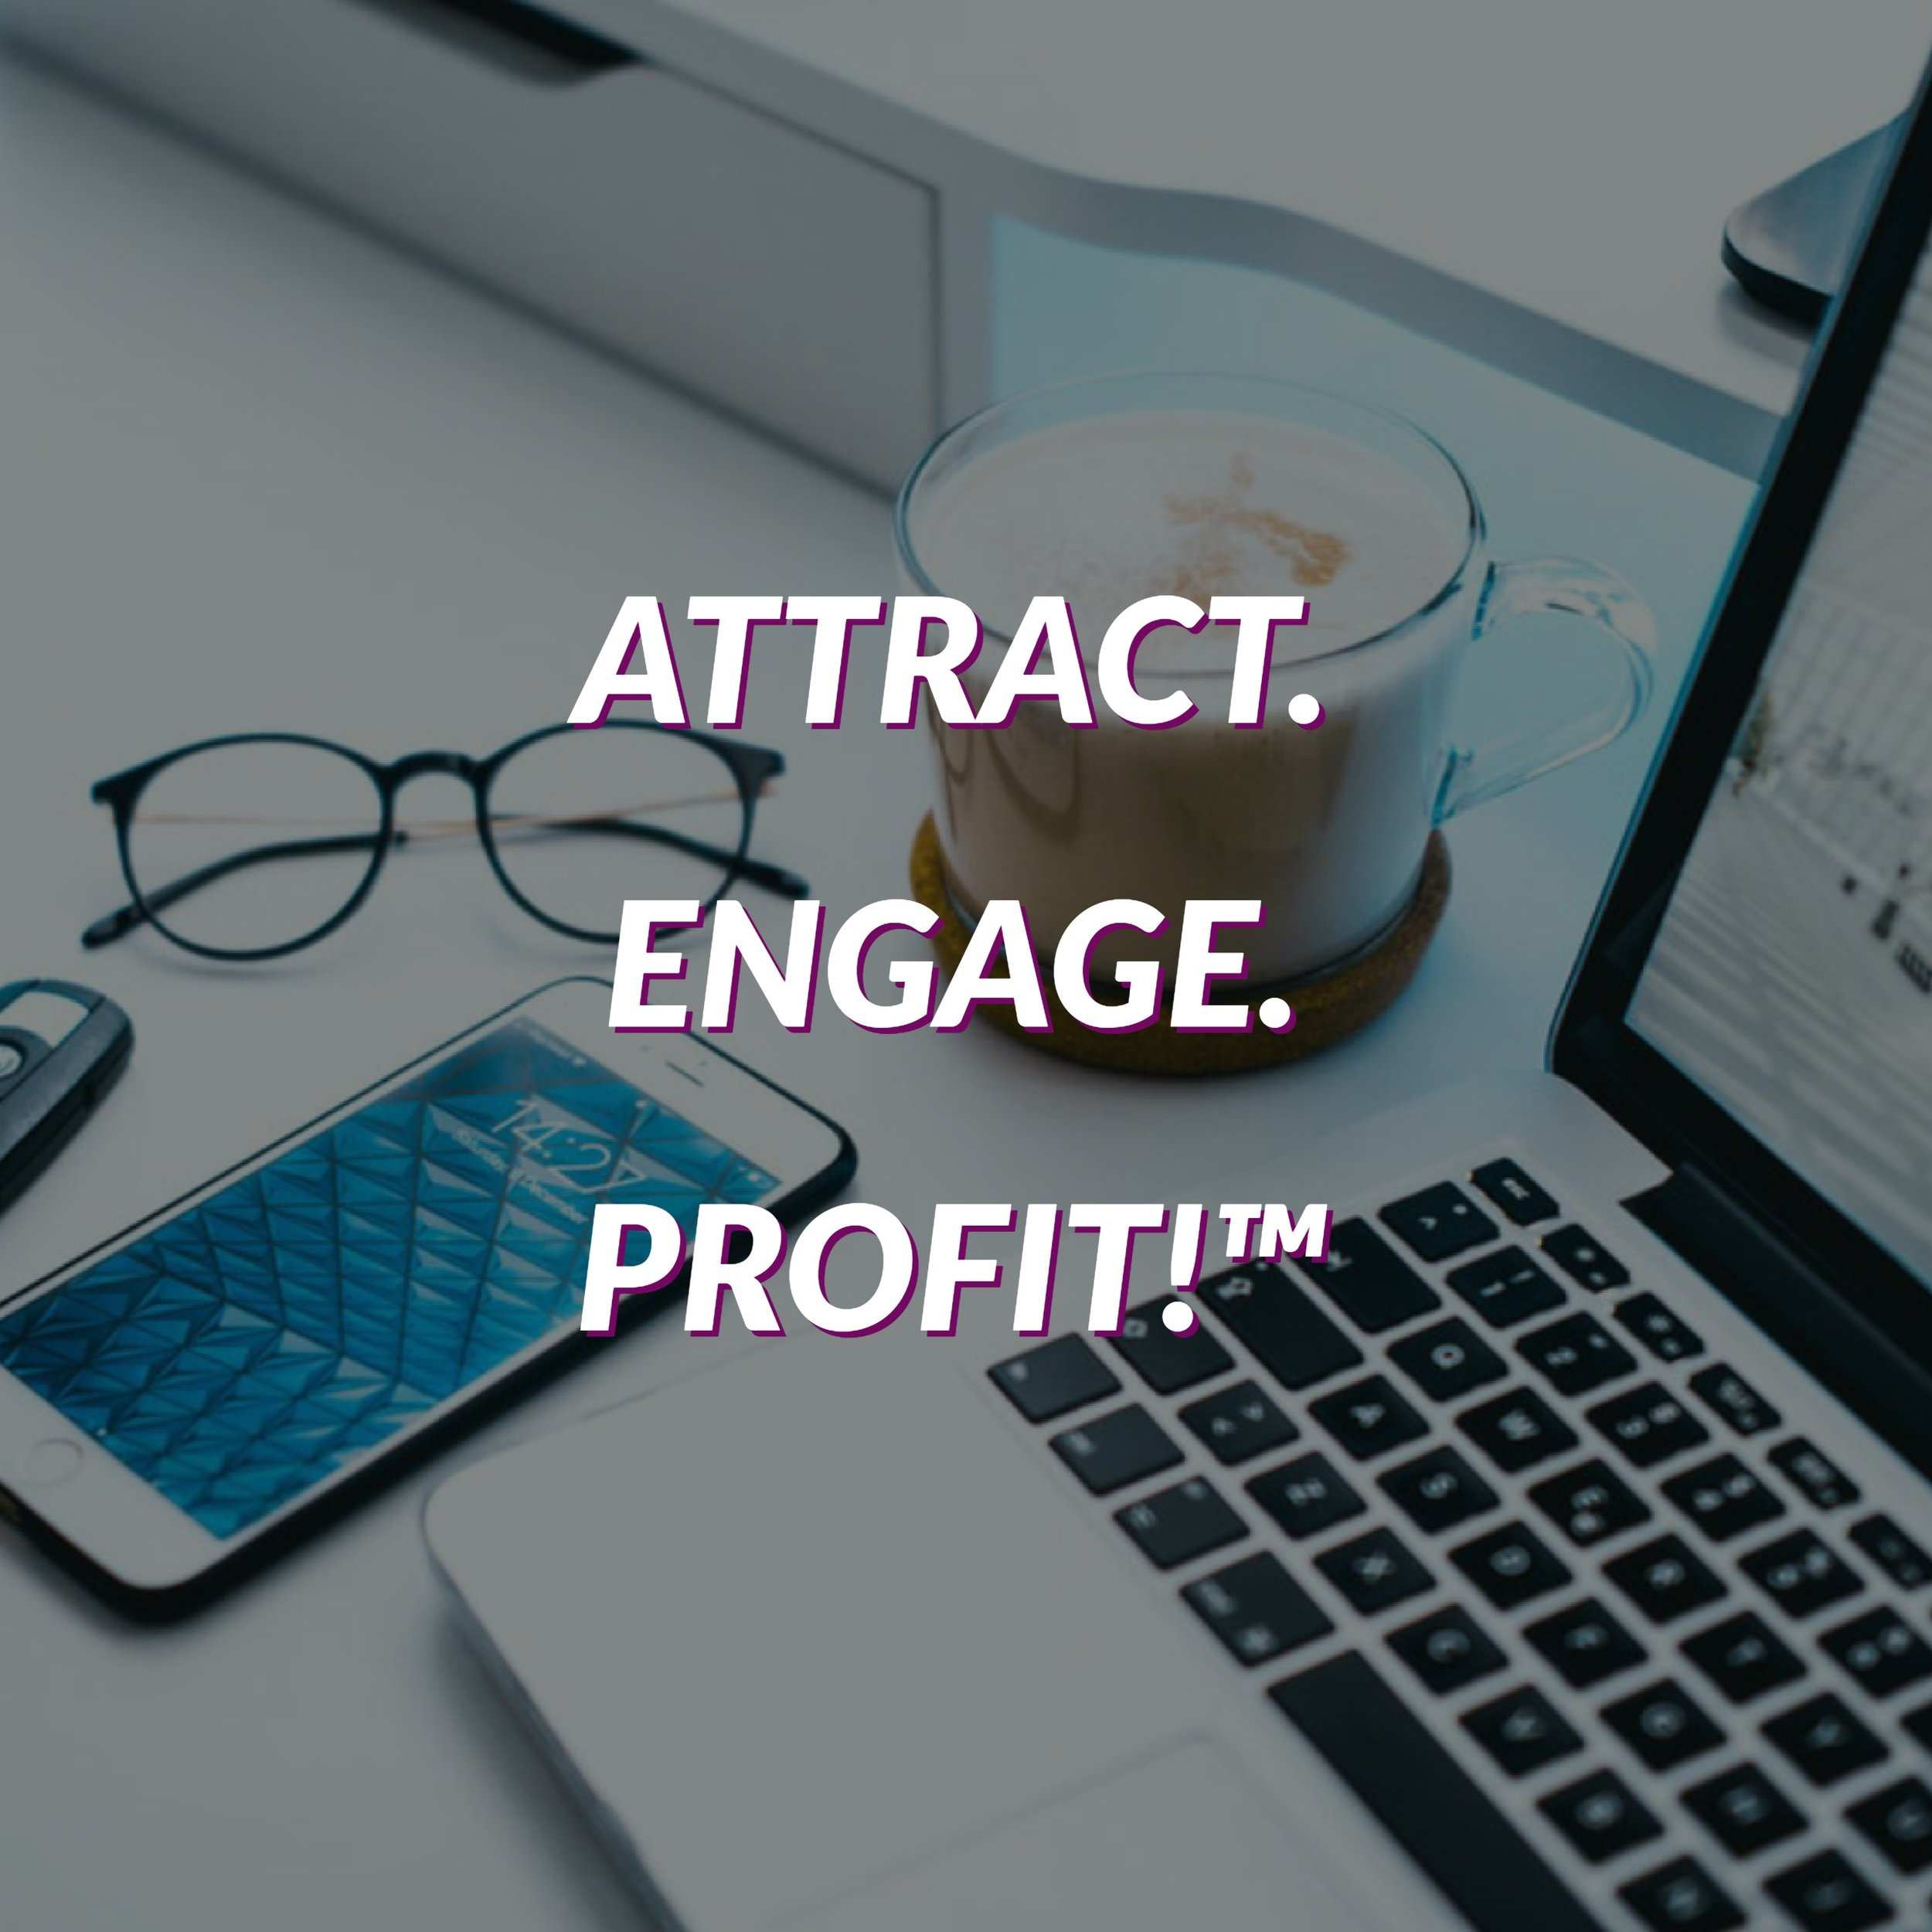 Attract Engage Profit by Stacie Walker.jpg